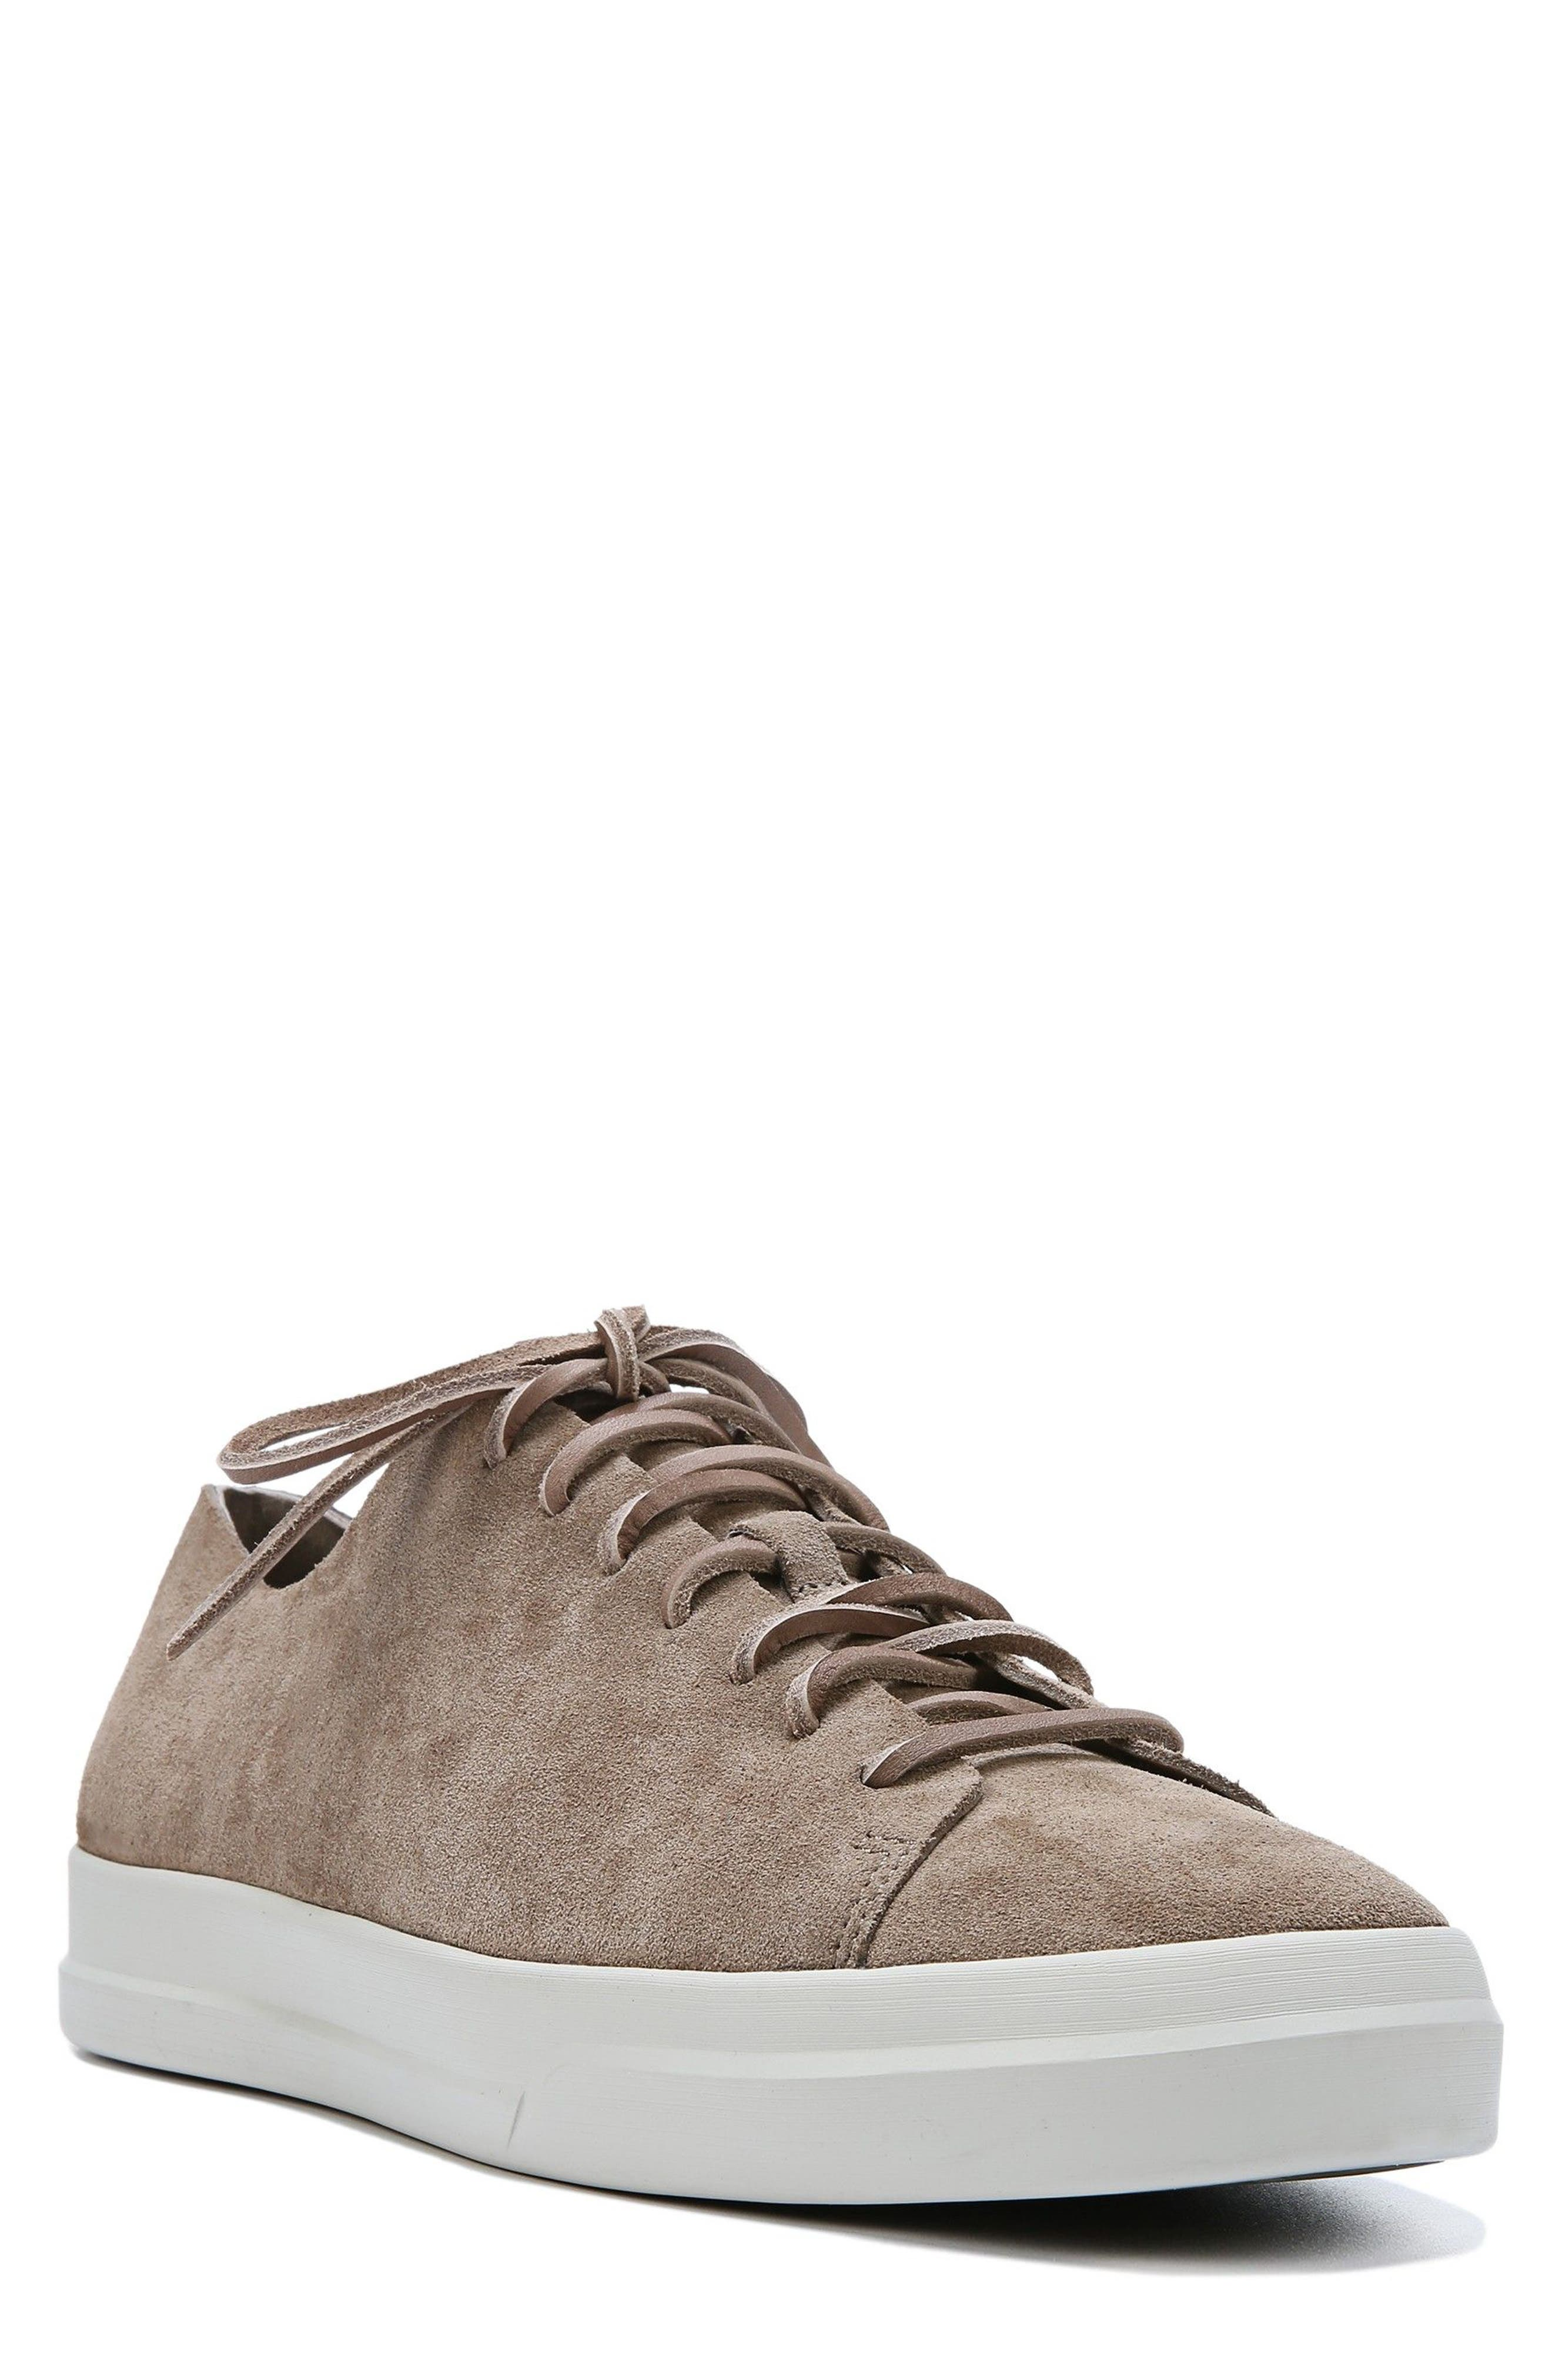 Copeland Sneaker,                         Main,                         color, Flint Tan Suede